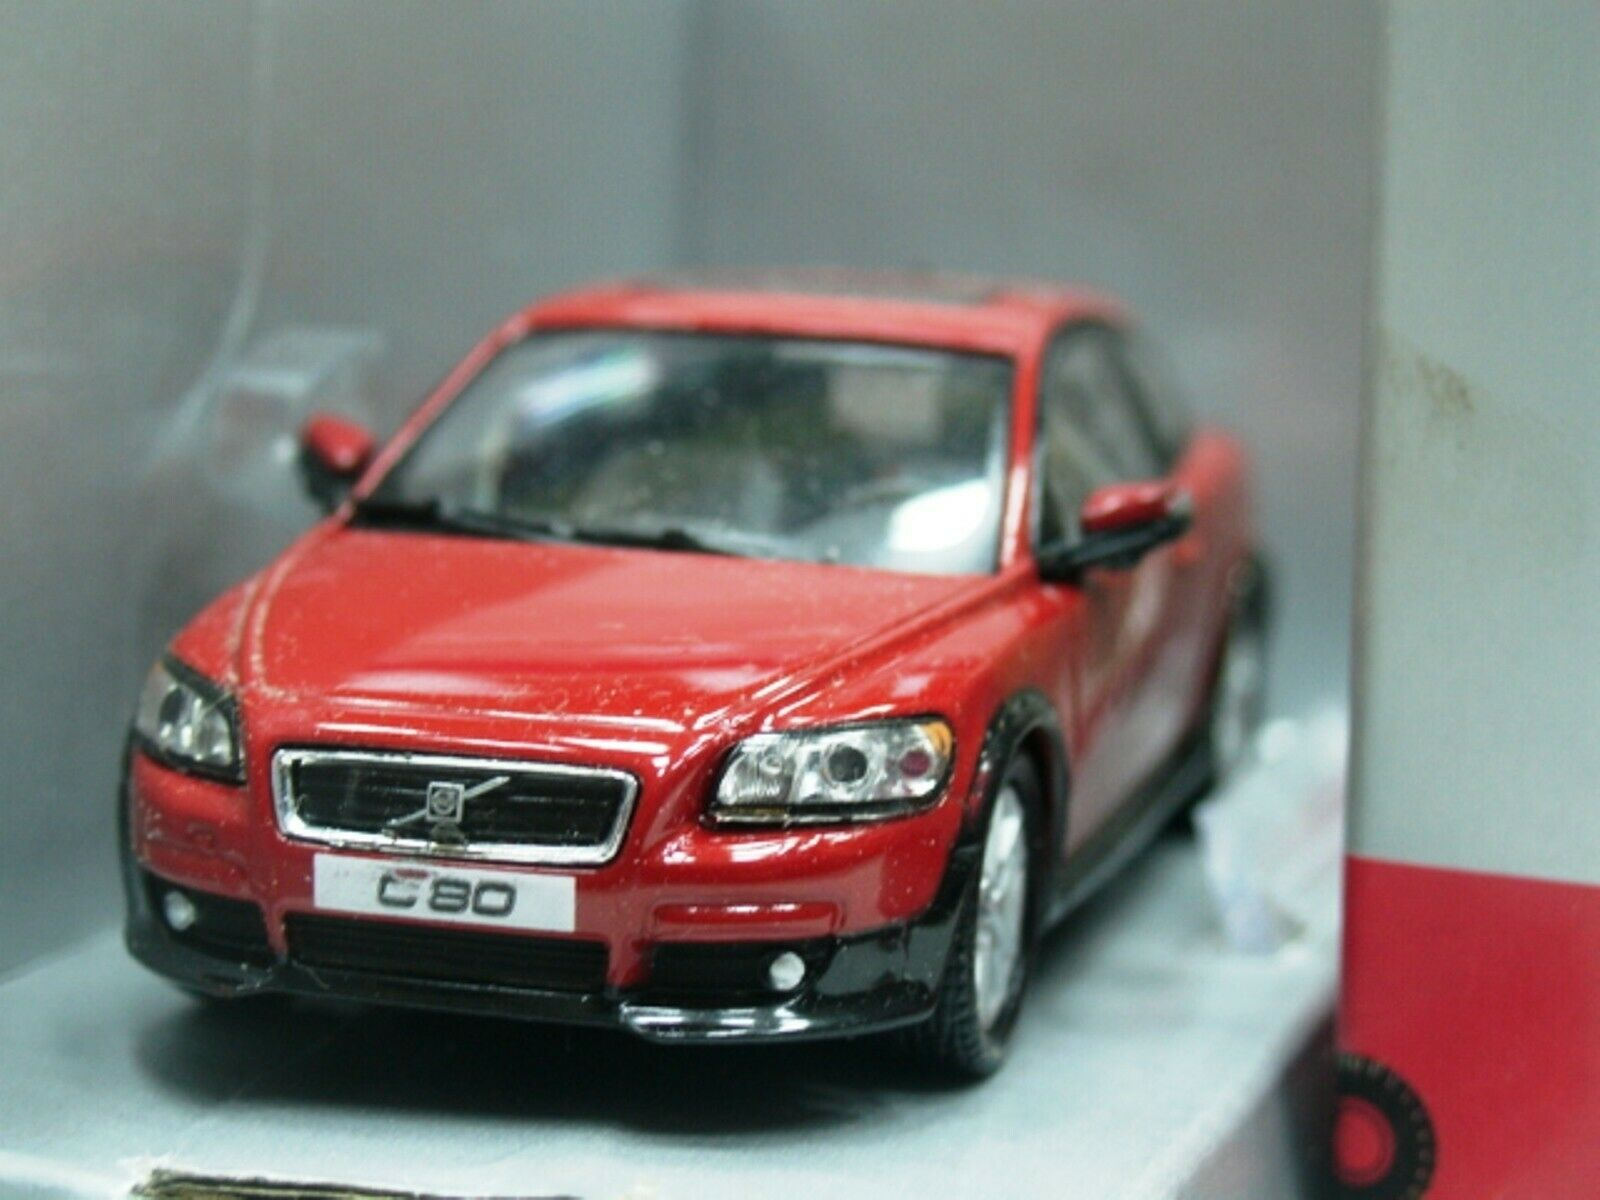 WOW EXTREMELY RARE Volvo C30 C30 MkI SC T5 2007 Candy Red VFL5016R 1 43 Motorart-850